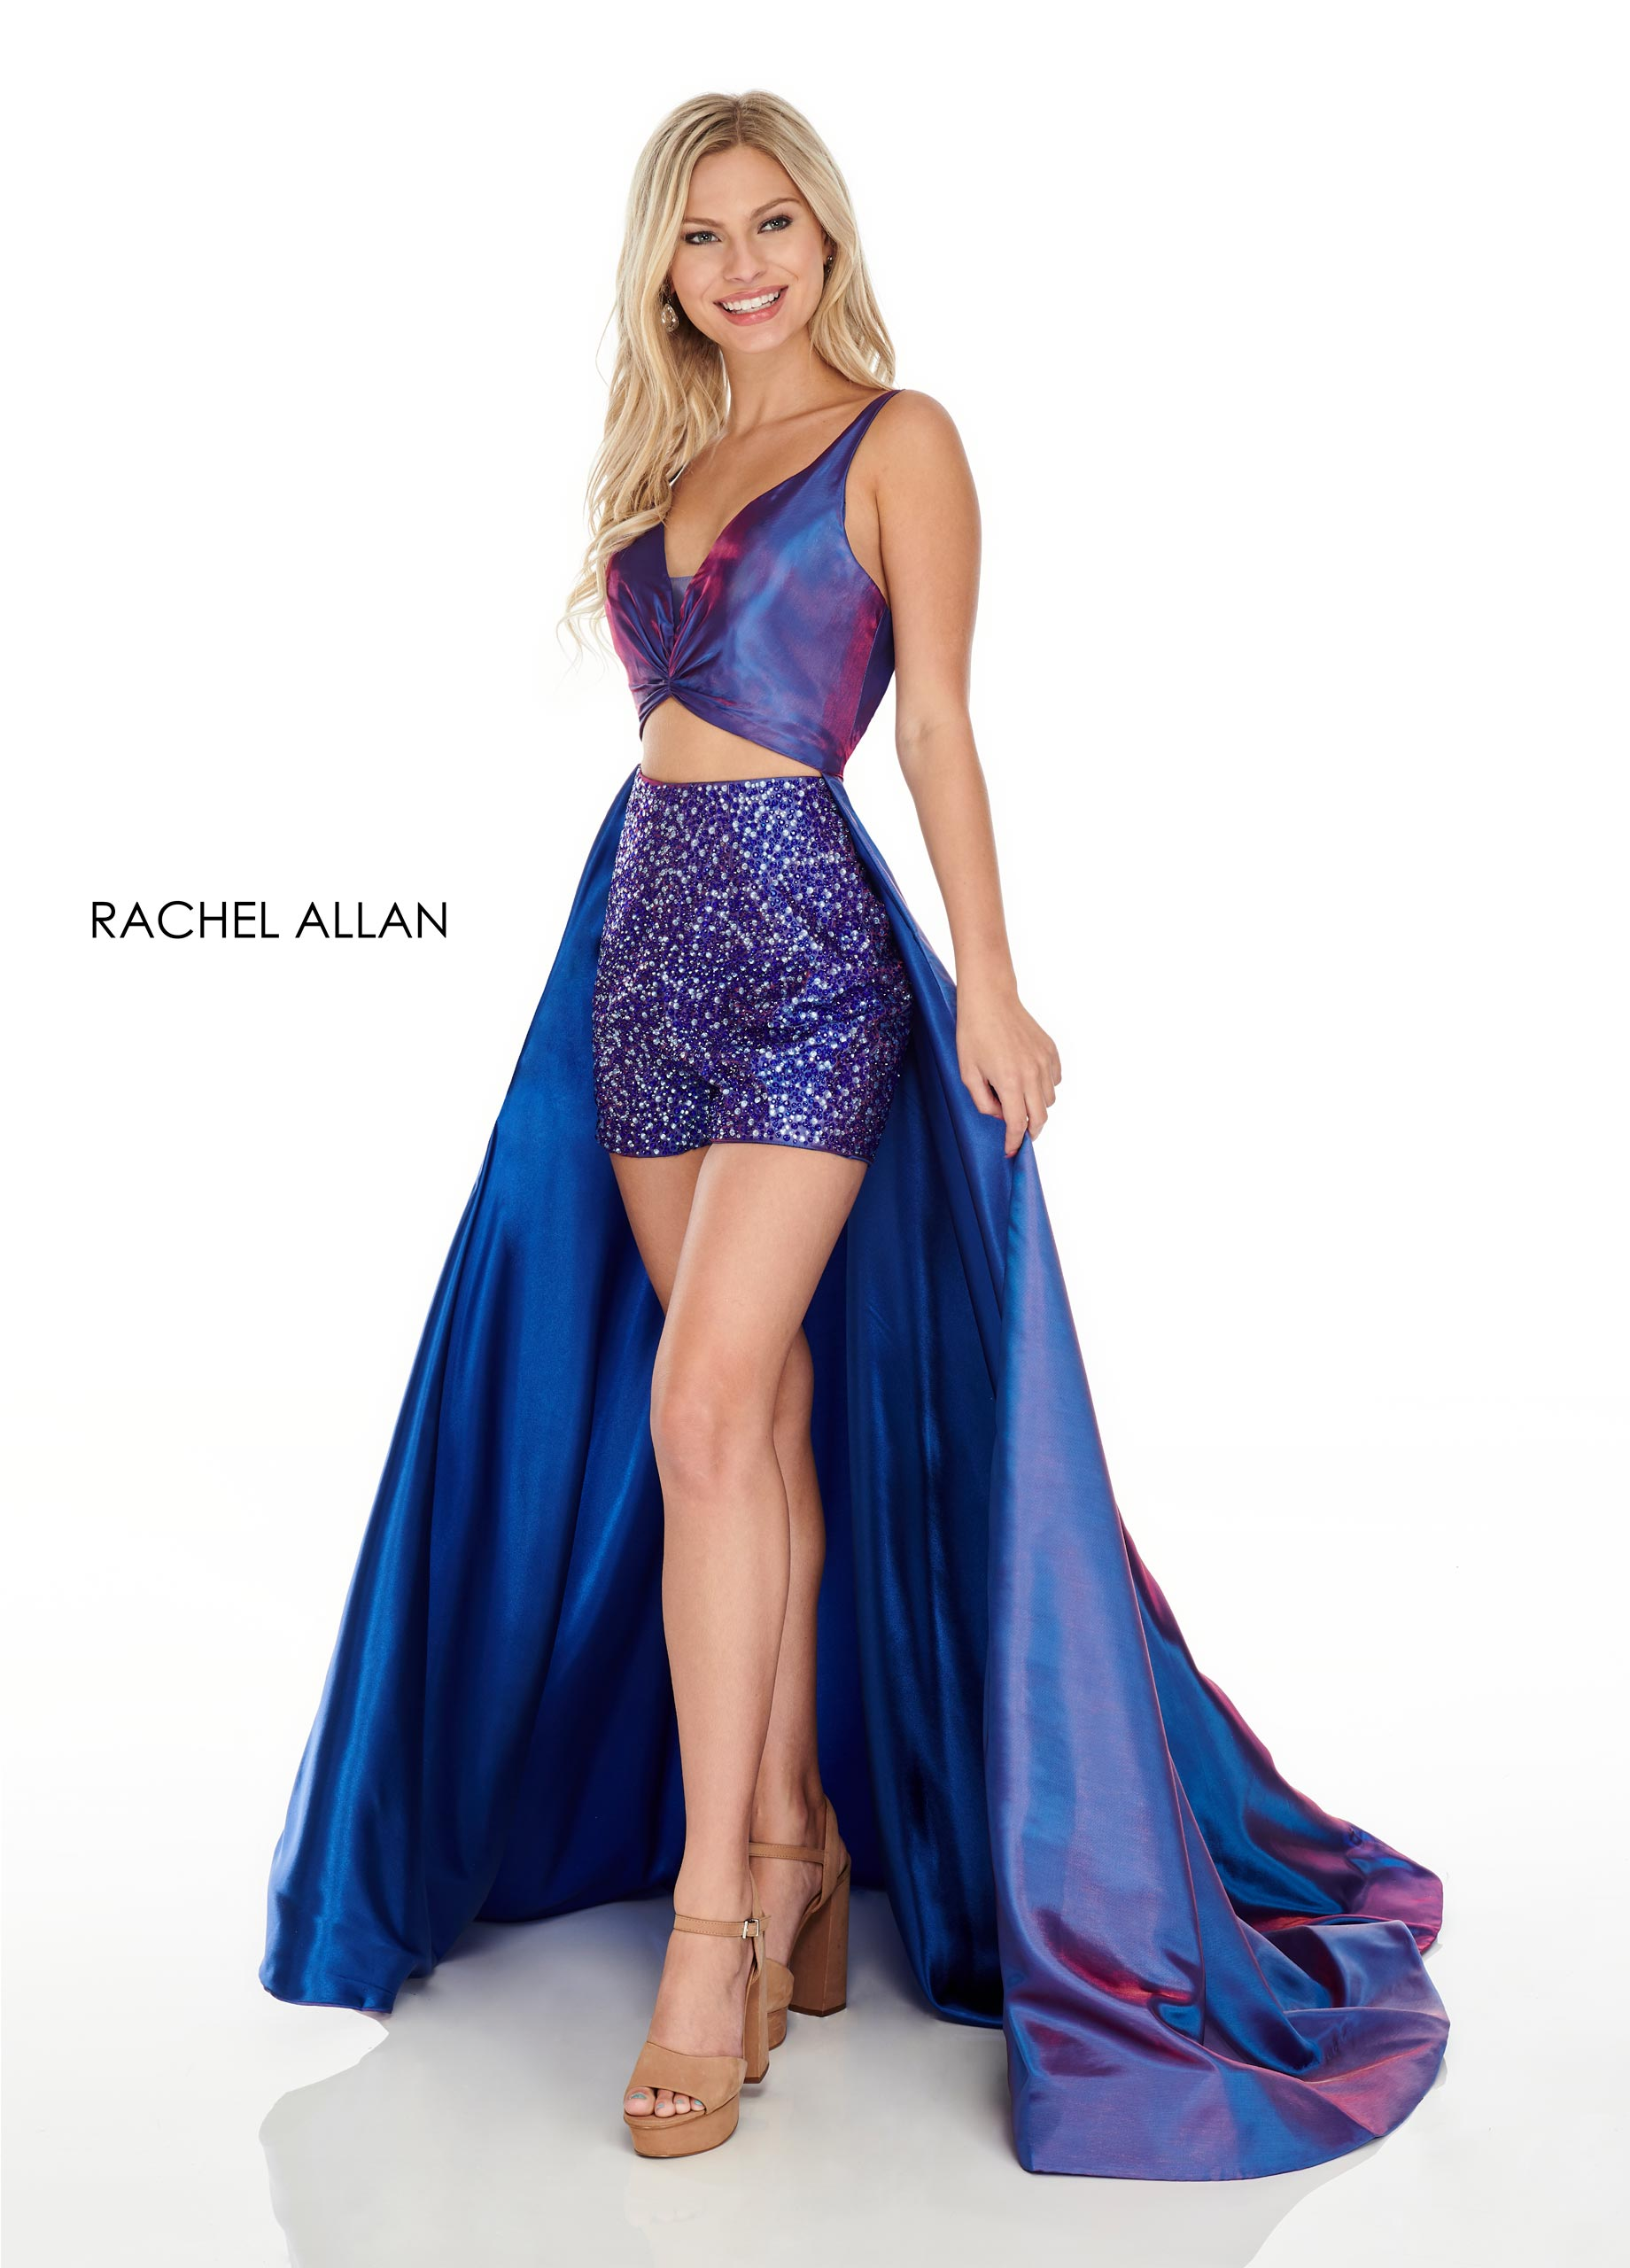 V-Neck Shorts With Overlay Prom Dresses in Purple Color